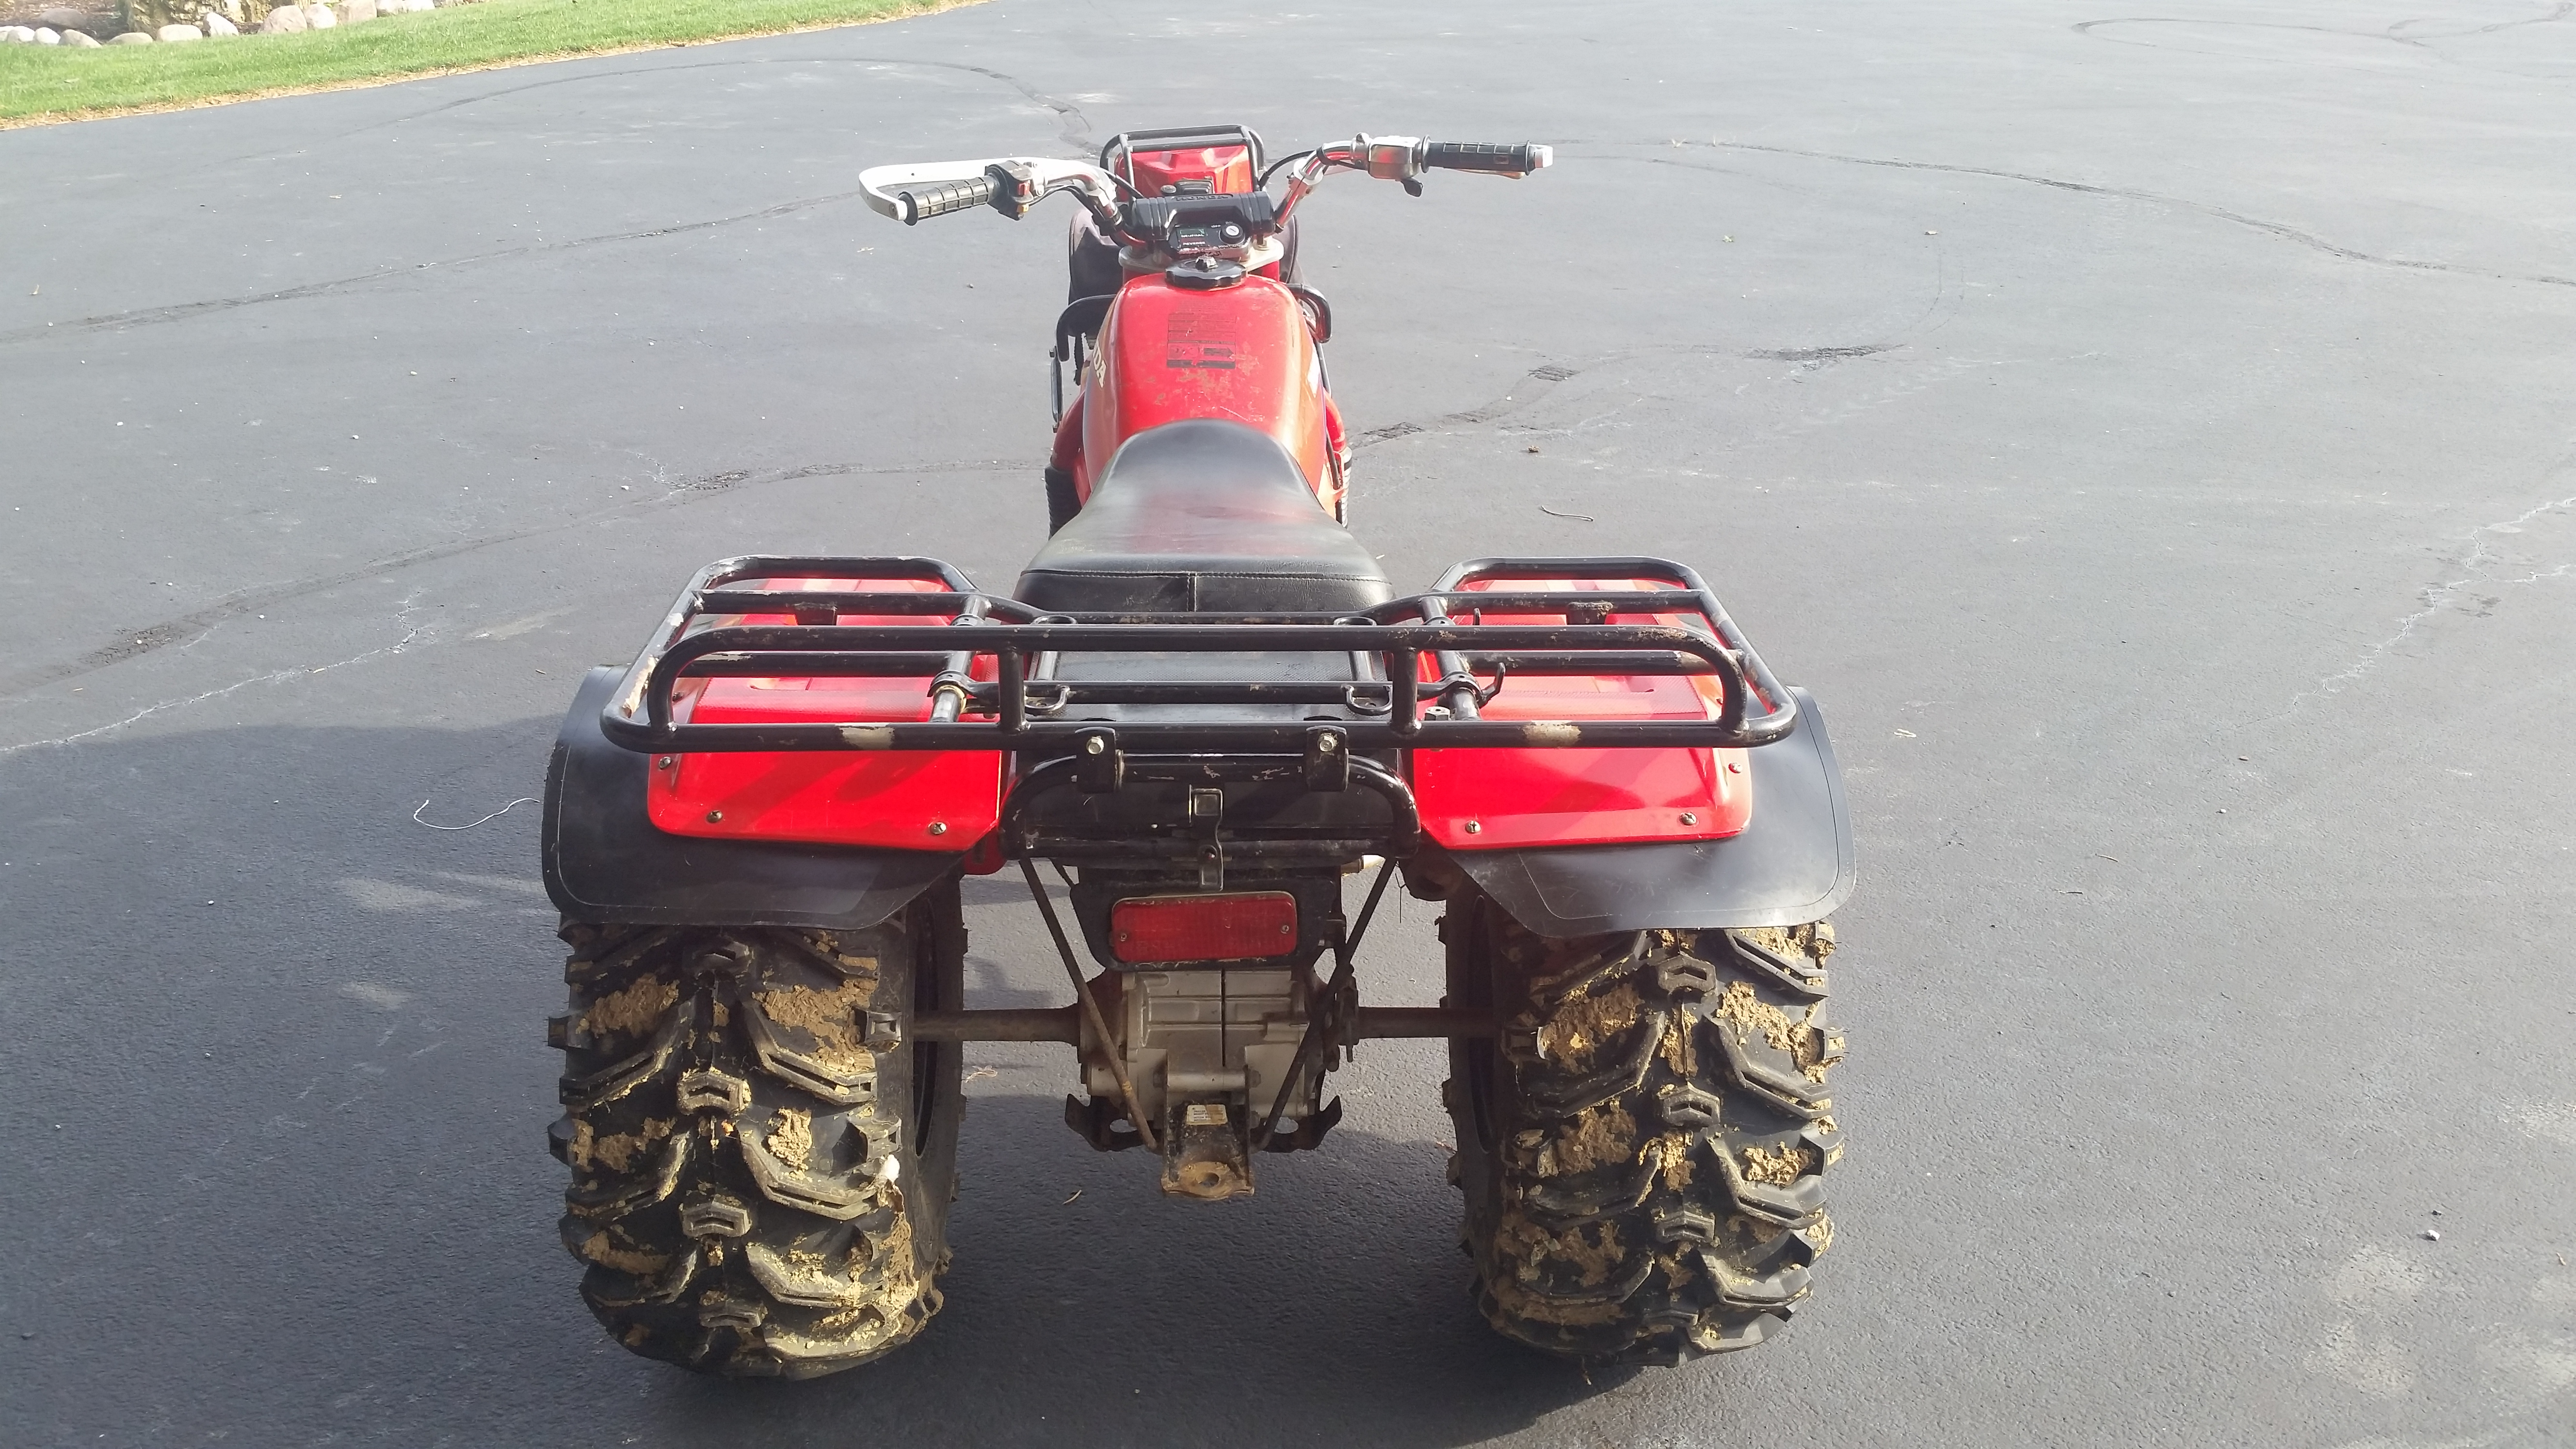 28298d1449371130 1984 honda 200es 3 wheeler sale chicago area 20151129_121115 1984 honda 200es 3 wheeler for sale (chicago area) polaris atv forum 1984 honda big red 200es wiring diagram at sewacar.co